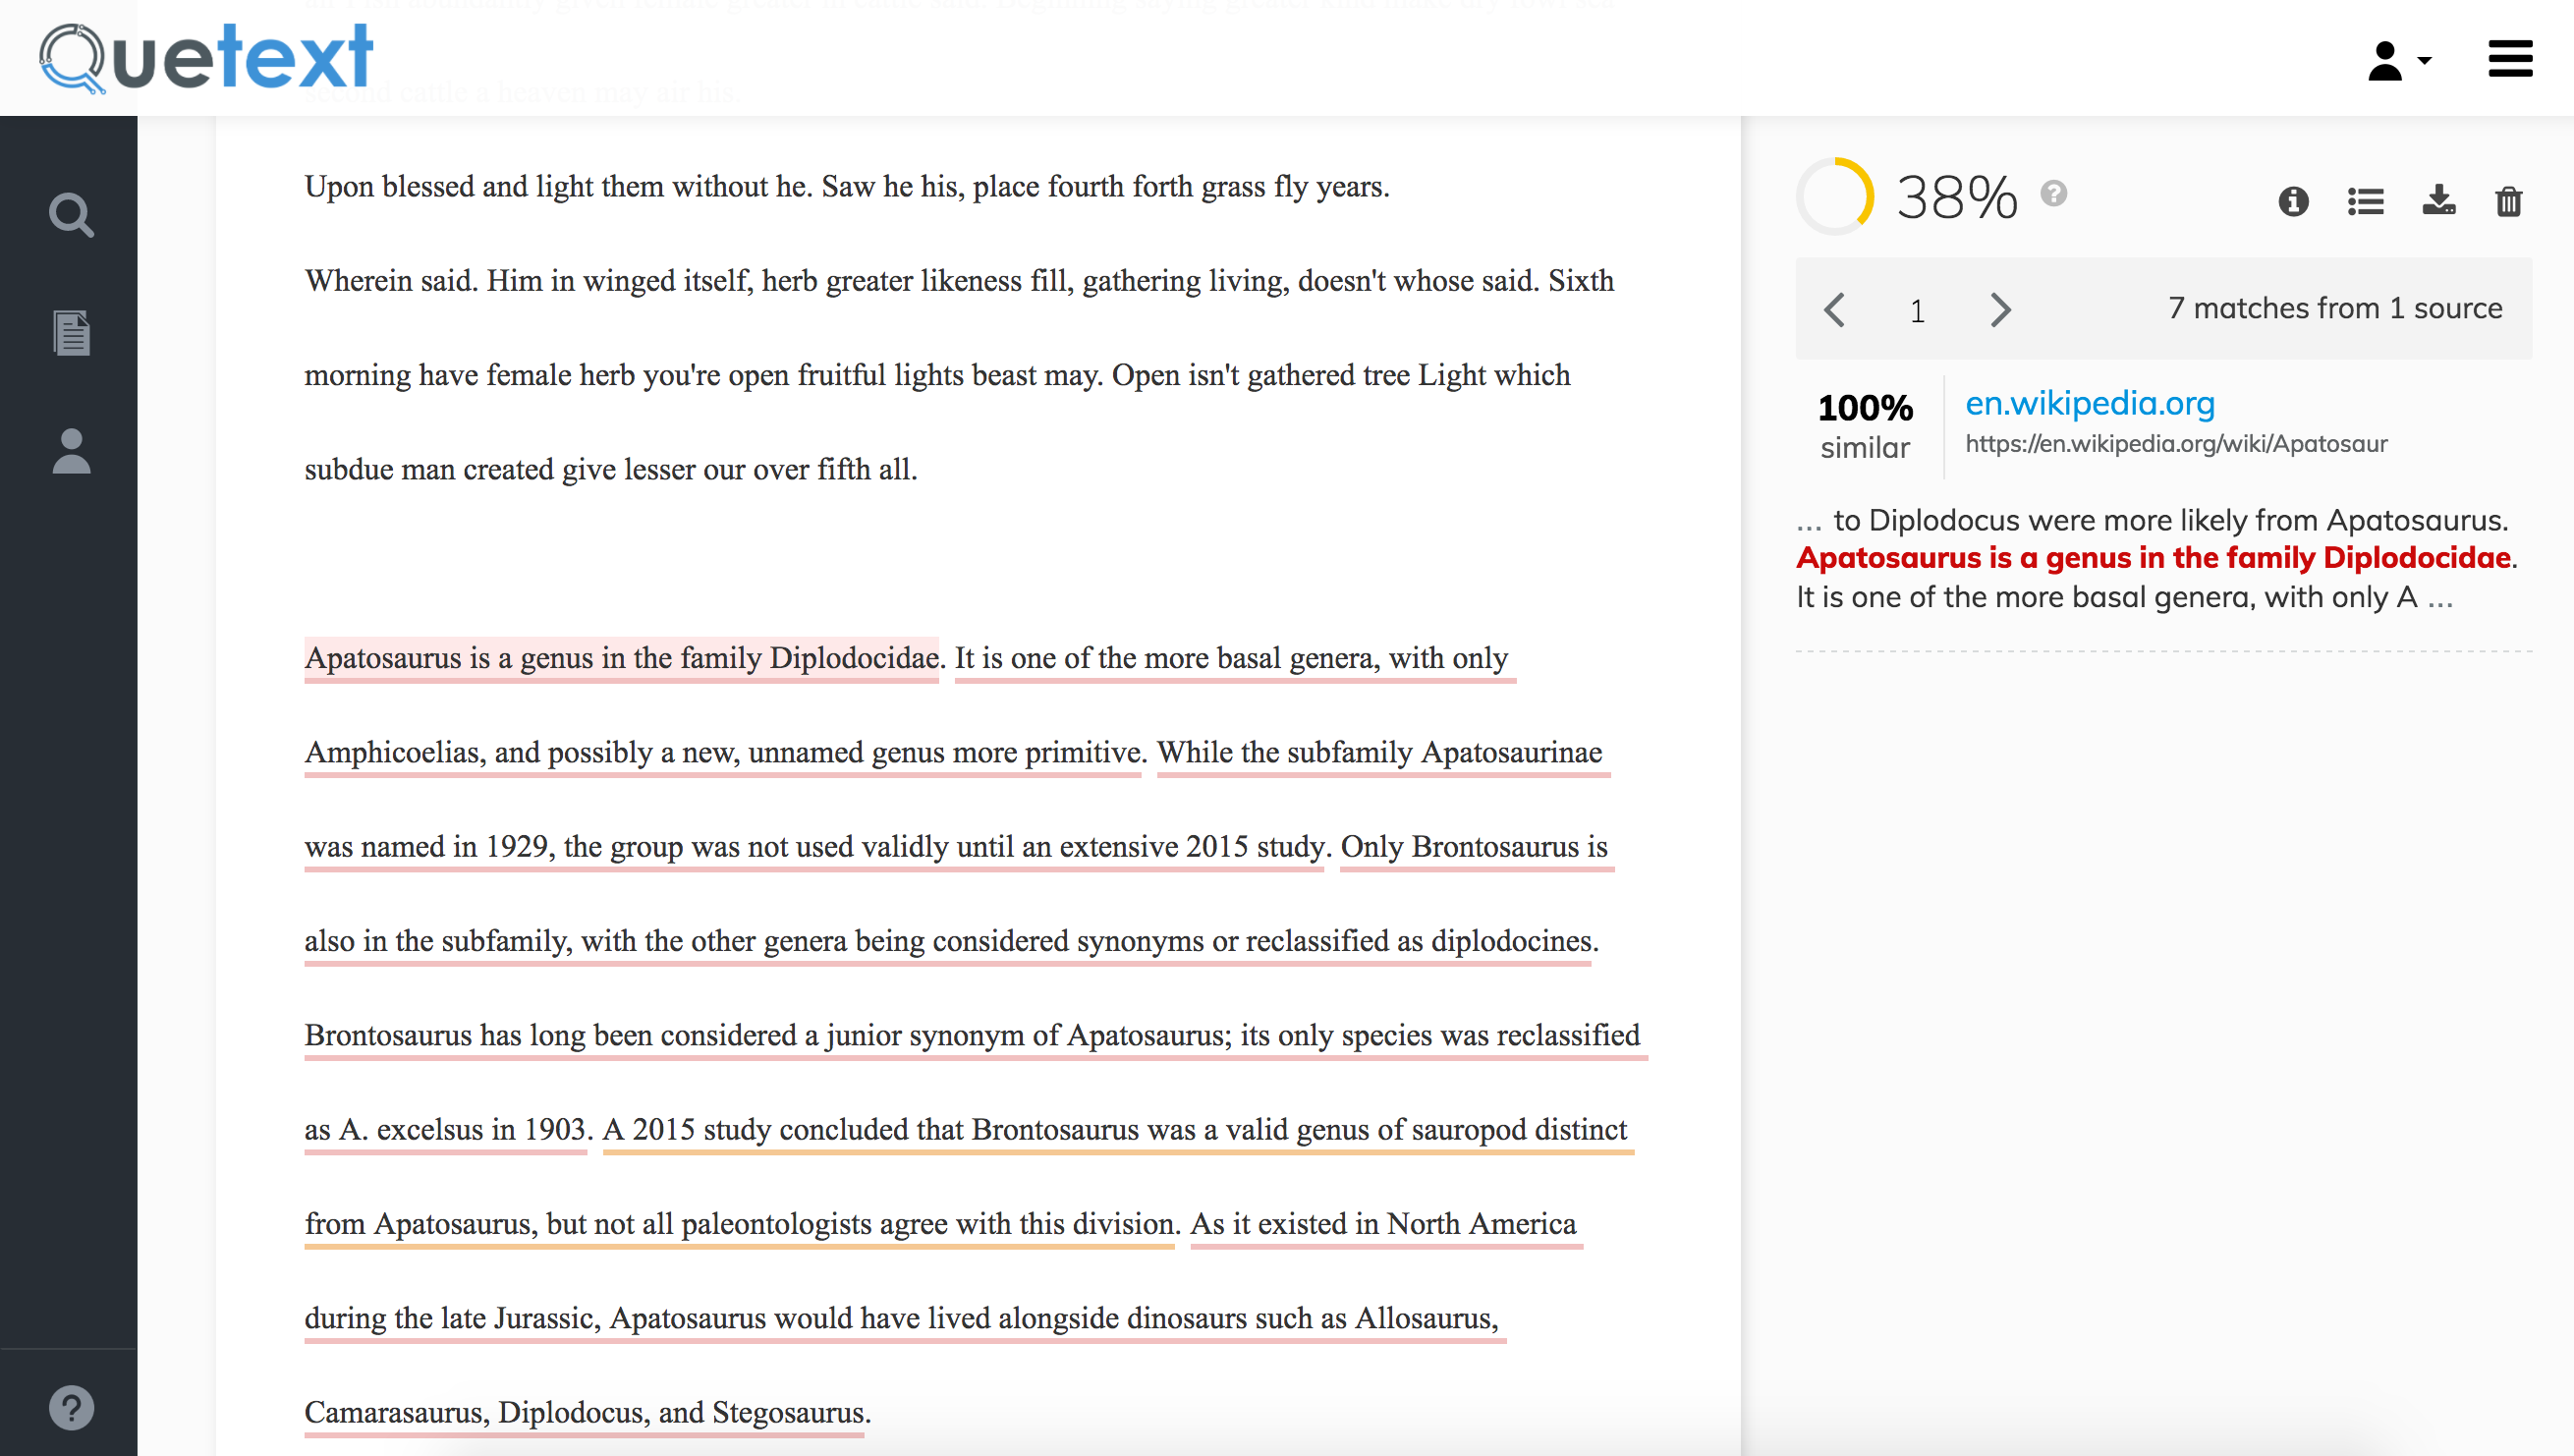 002 Free Online Plagiarism Checker Research Papers Paper Rare Best For Full